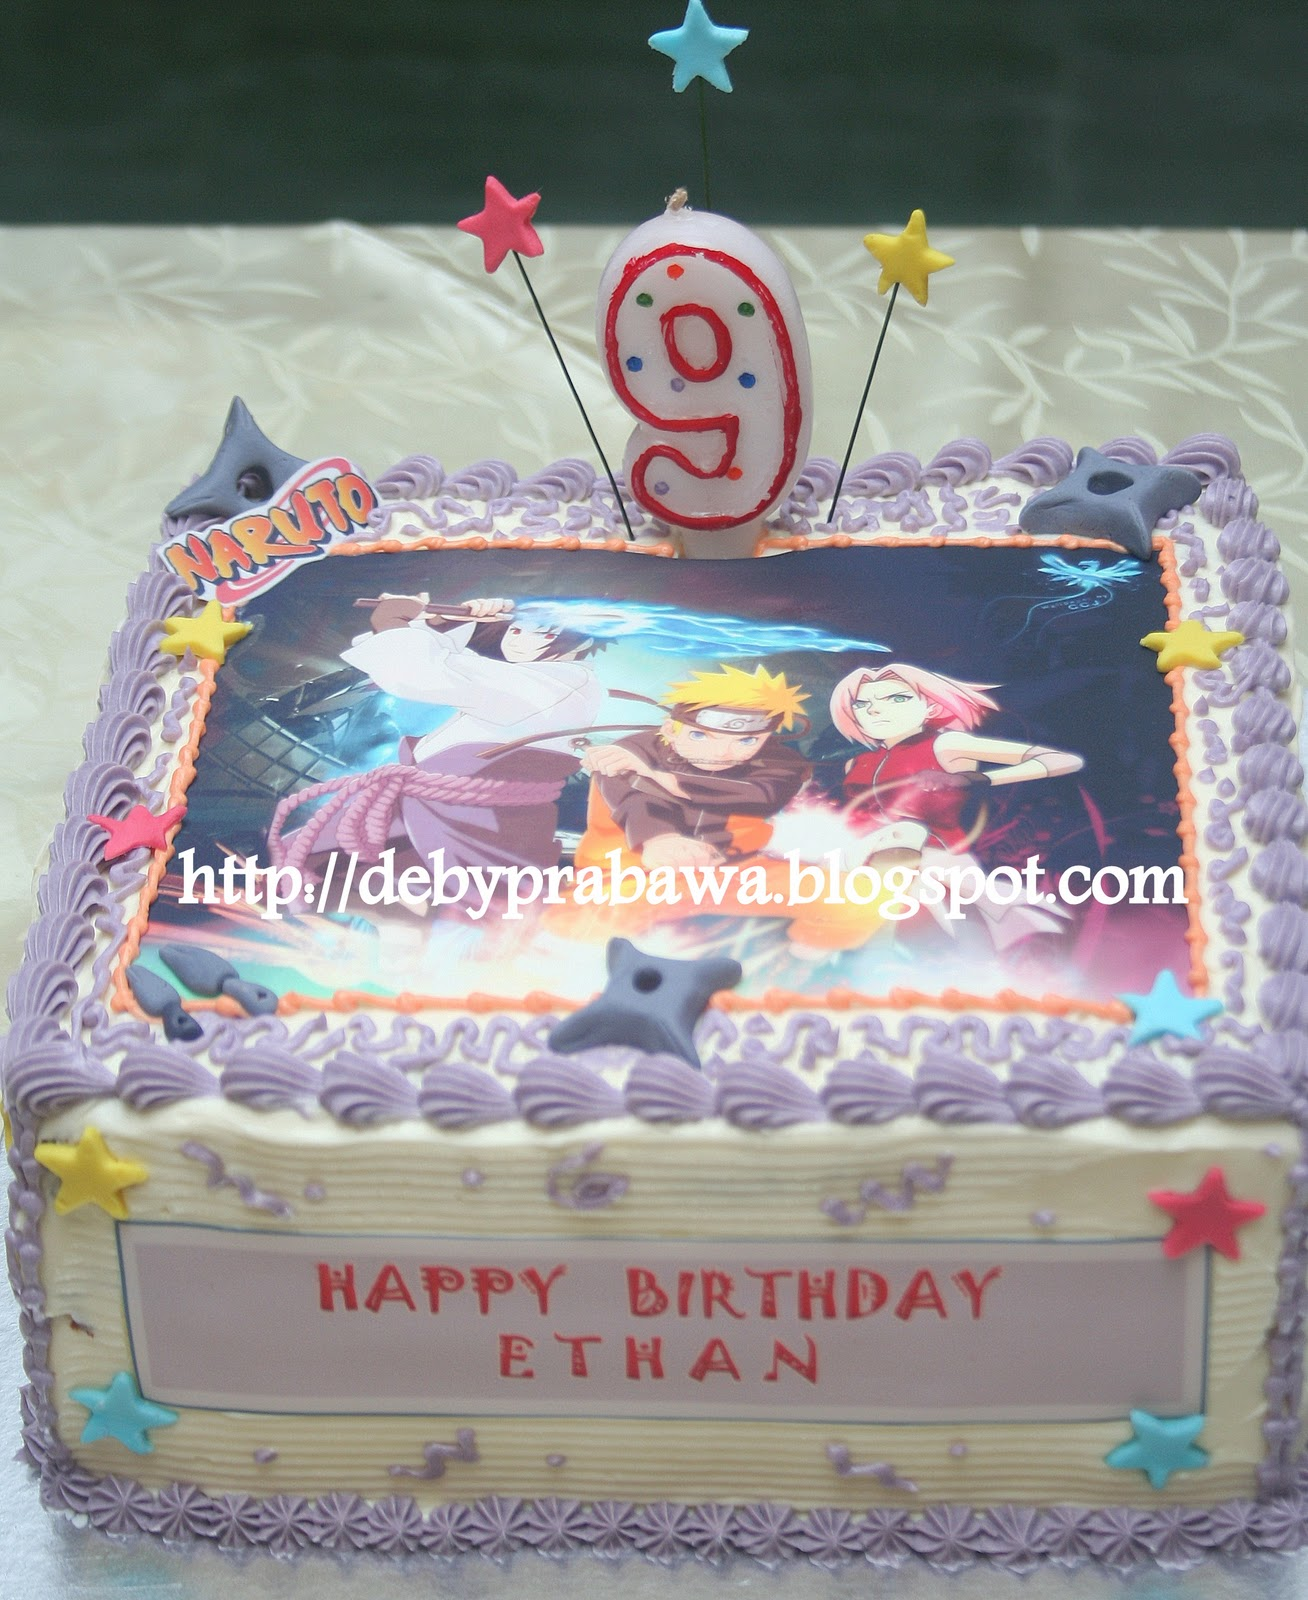 Butterfly Cake Naruto Theme Cake For Ethan